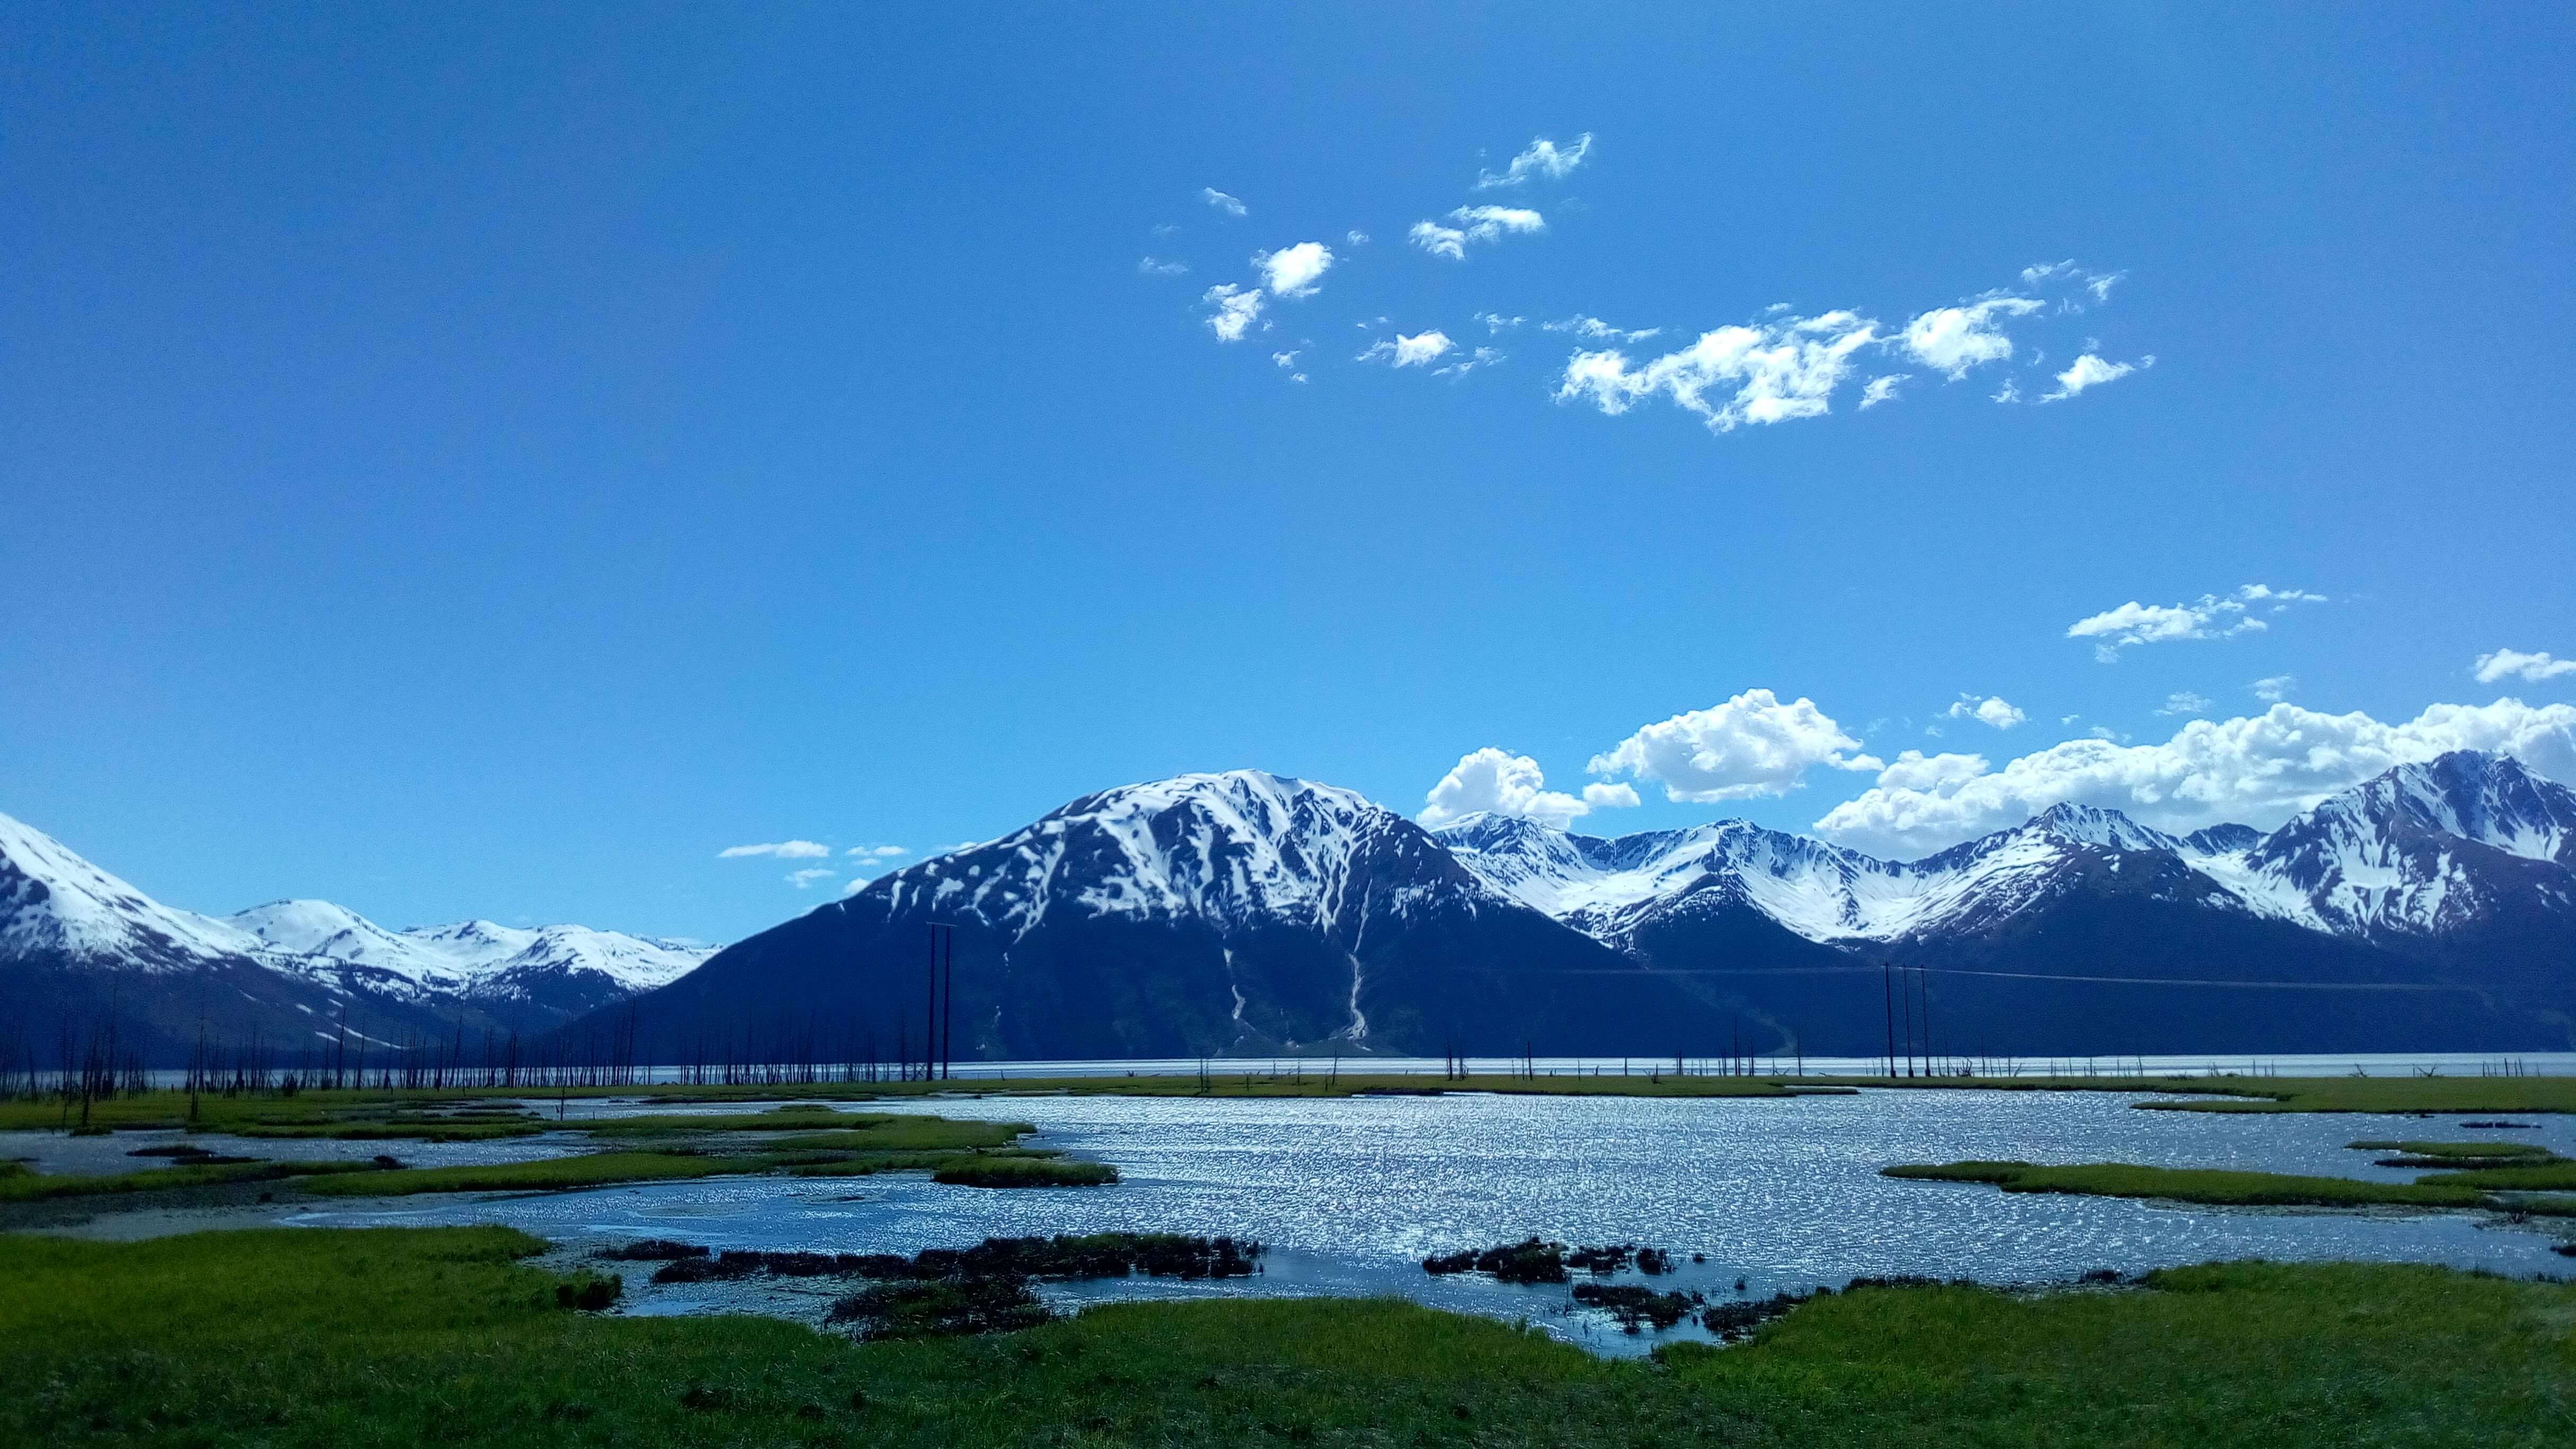 green grass bordering a broad waterway with snowy mountains in the backround, turnagain arm, alaska